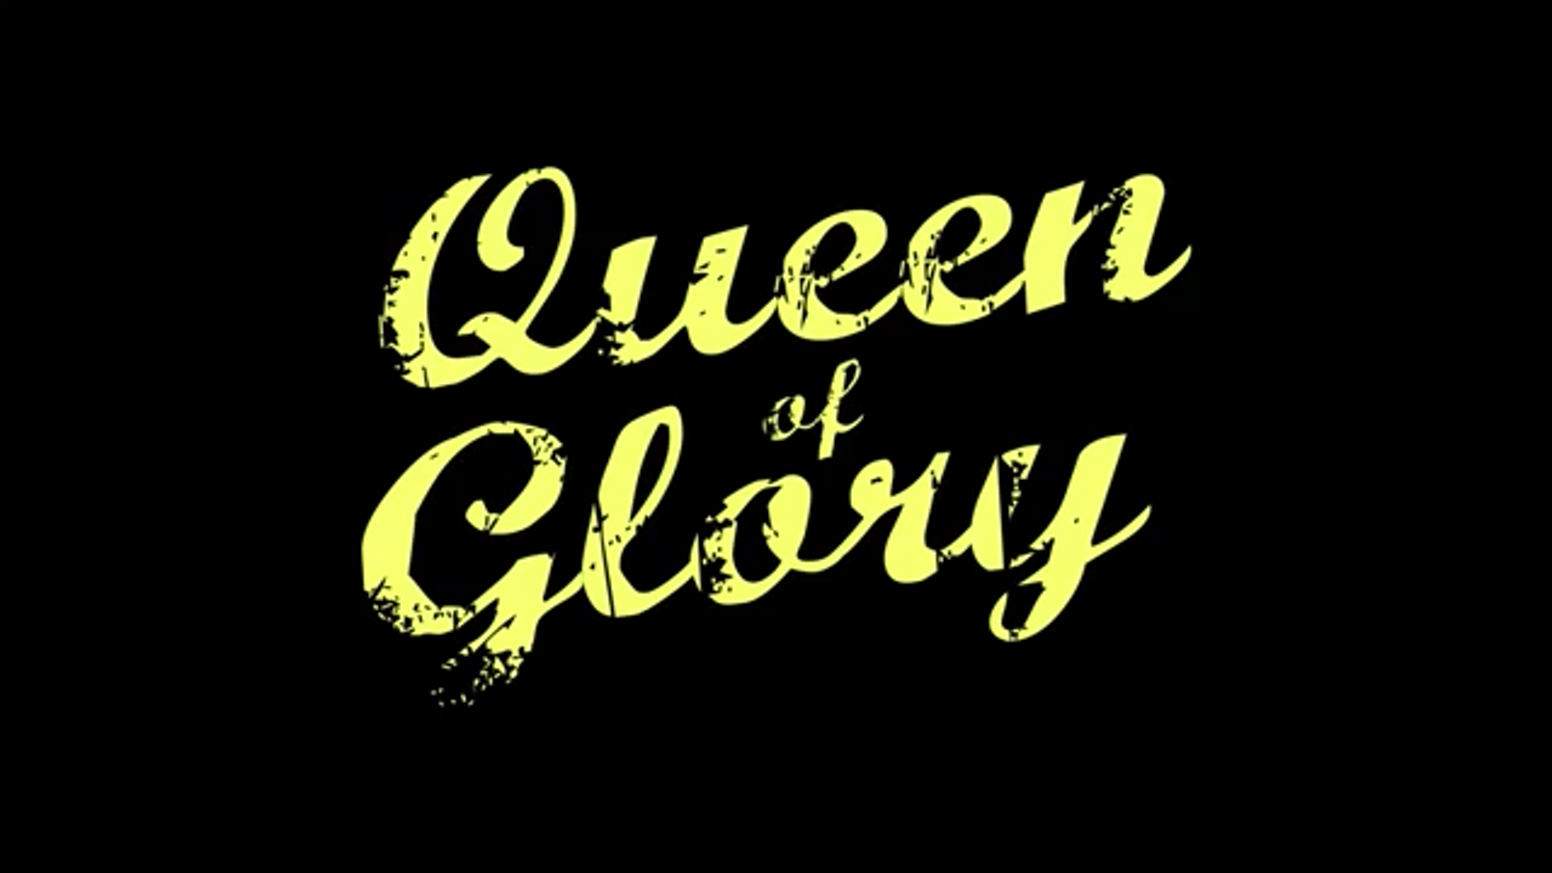 Queen of Glory is the female-directed dark comedy of a maladjusted PhD student who becomes sole proprietor of a Christian bookstore.